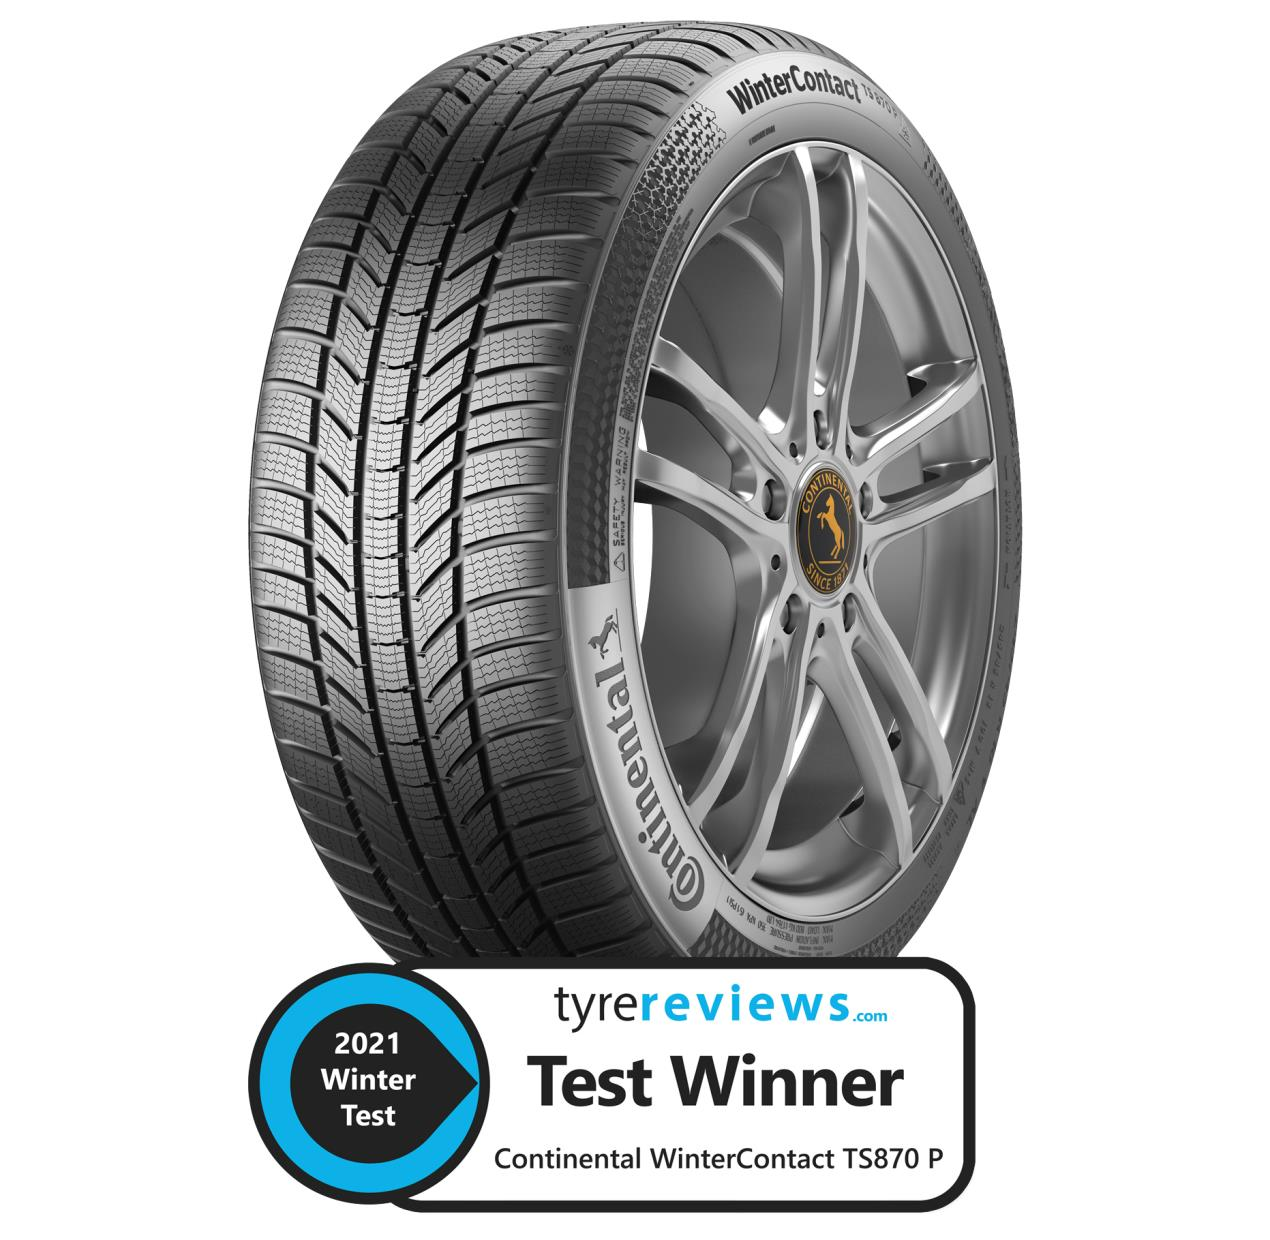 Continental__WinterContact-TS-870-P TyreReviews